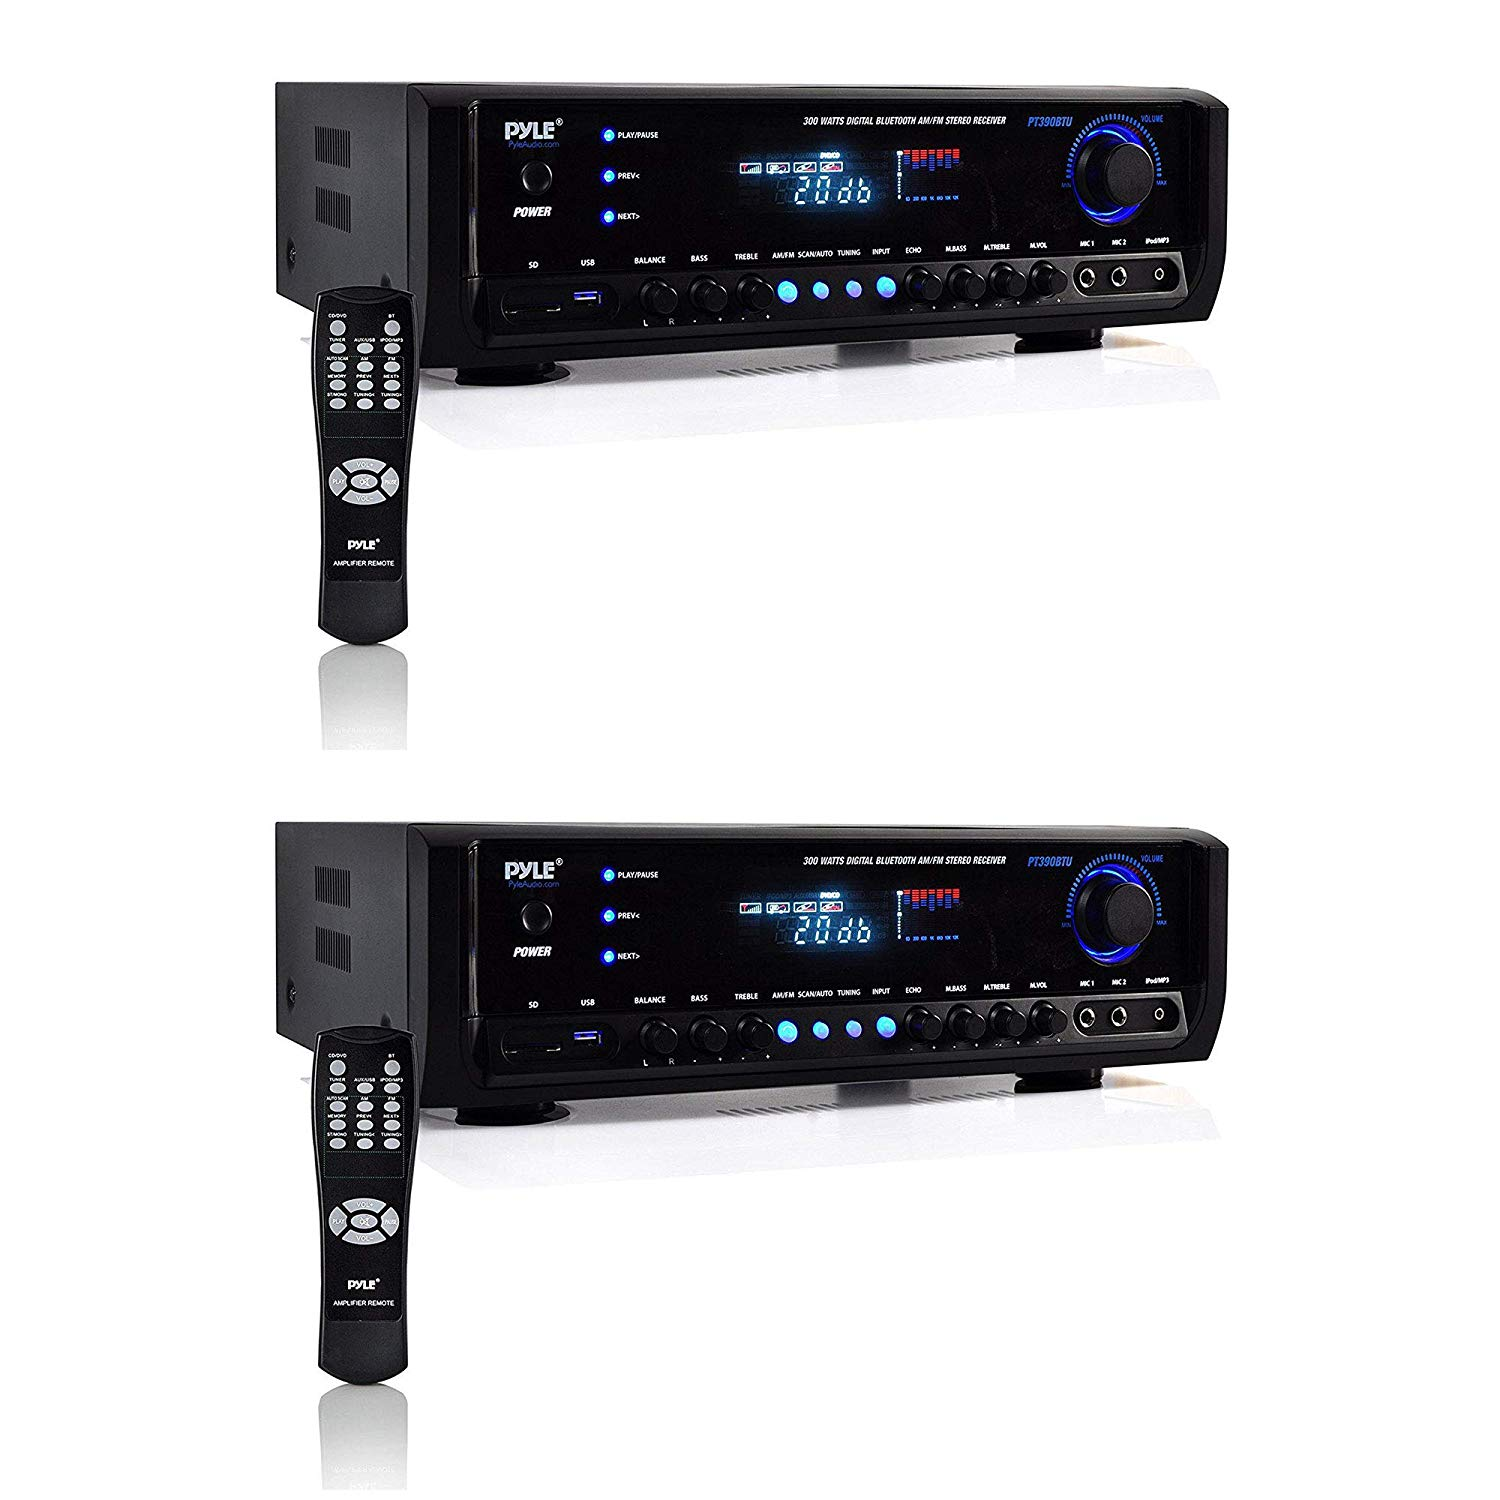 Pyle Digital Home Theater Bluetooth 4 Channel Radio Aux Stereo Receiver (2 Pack)